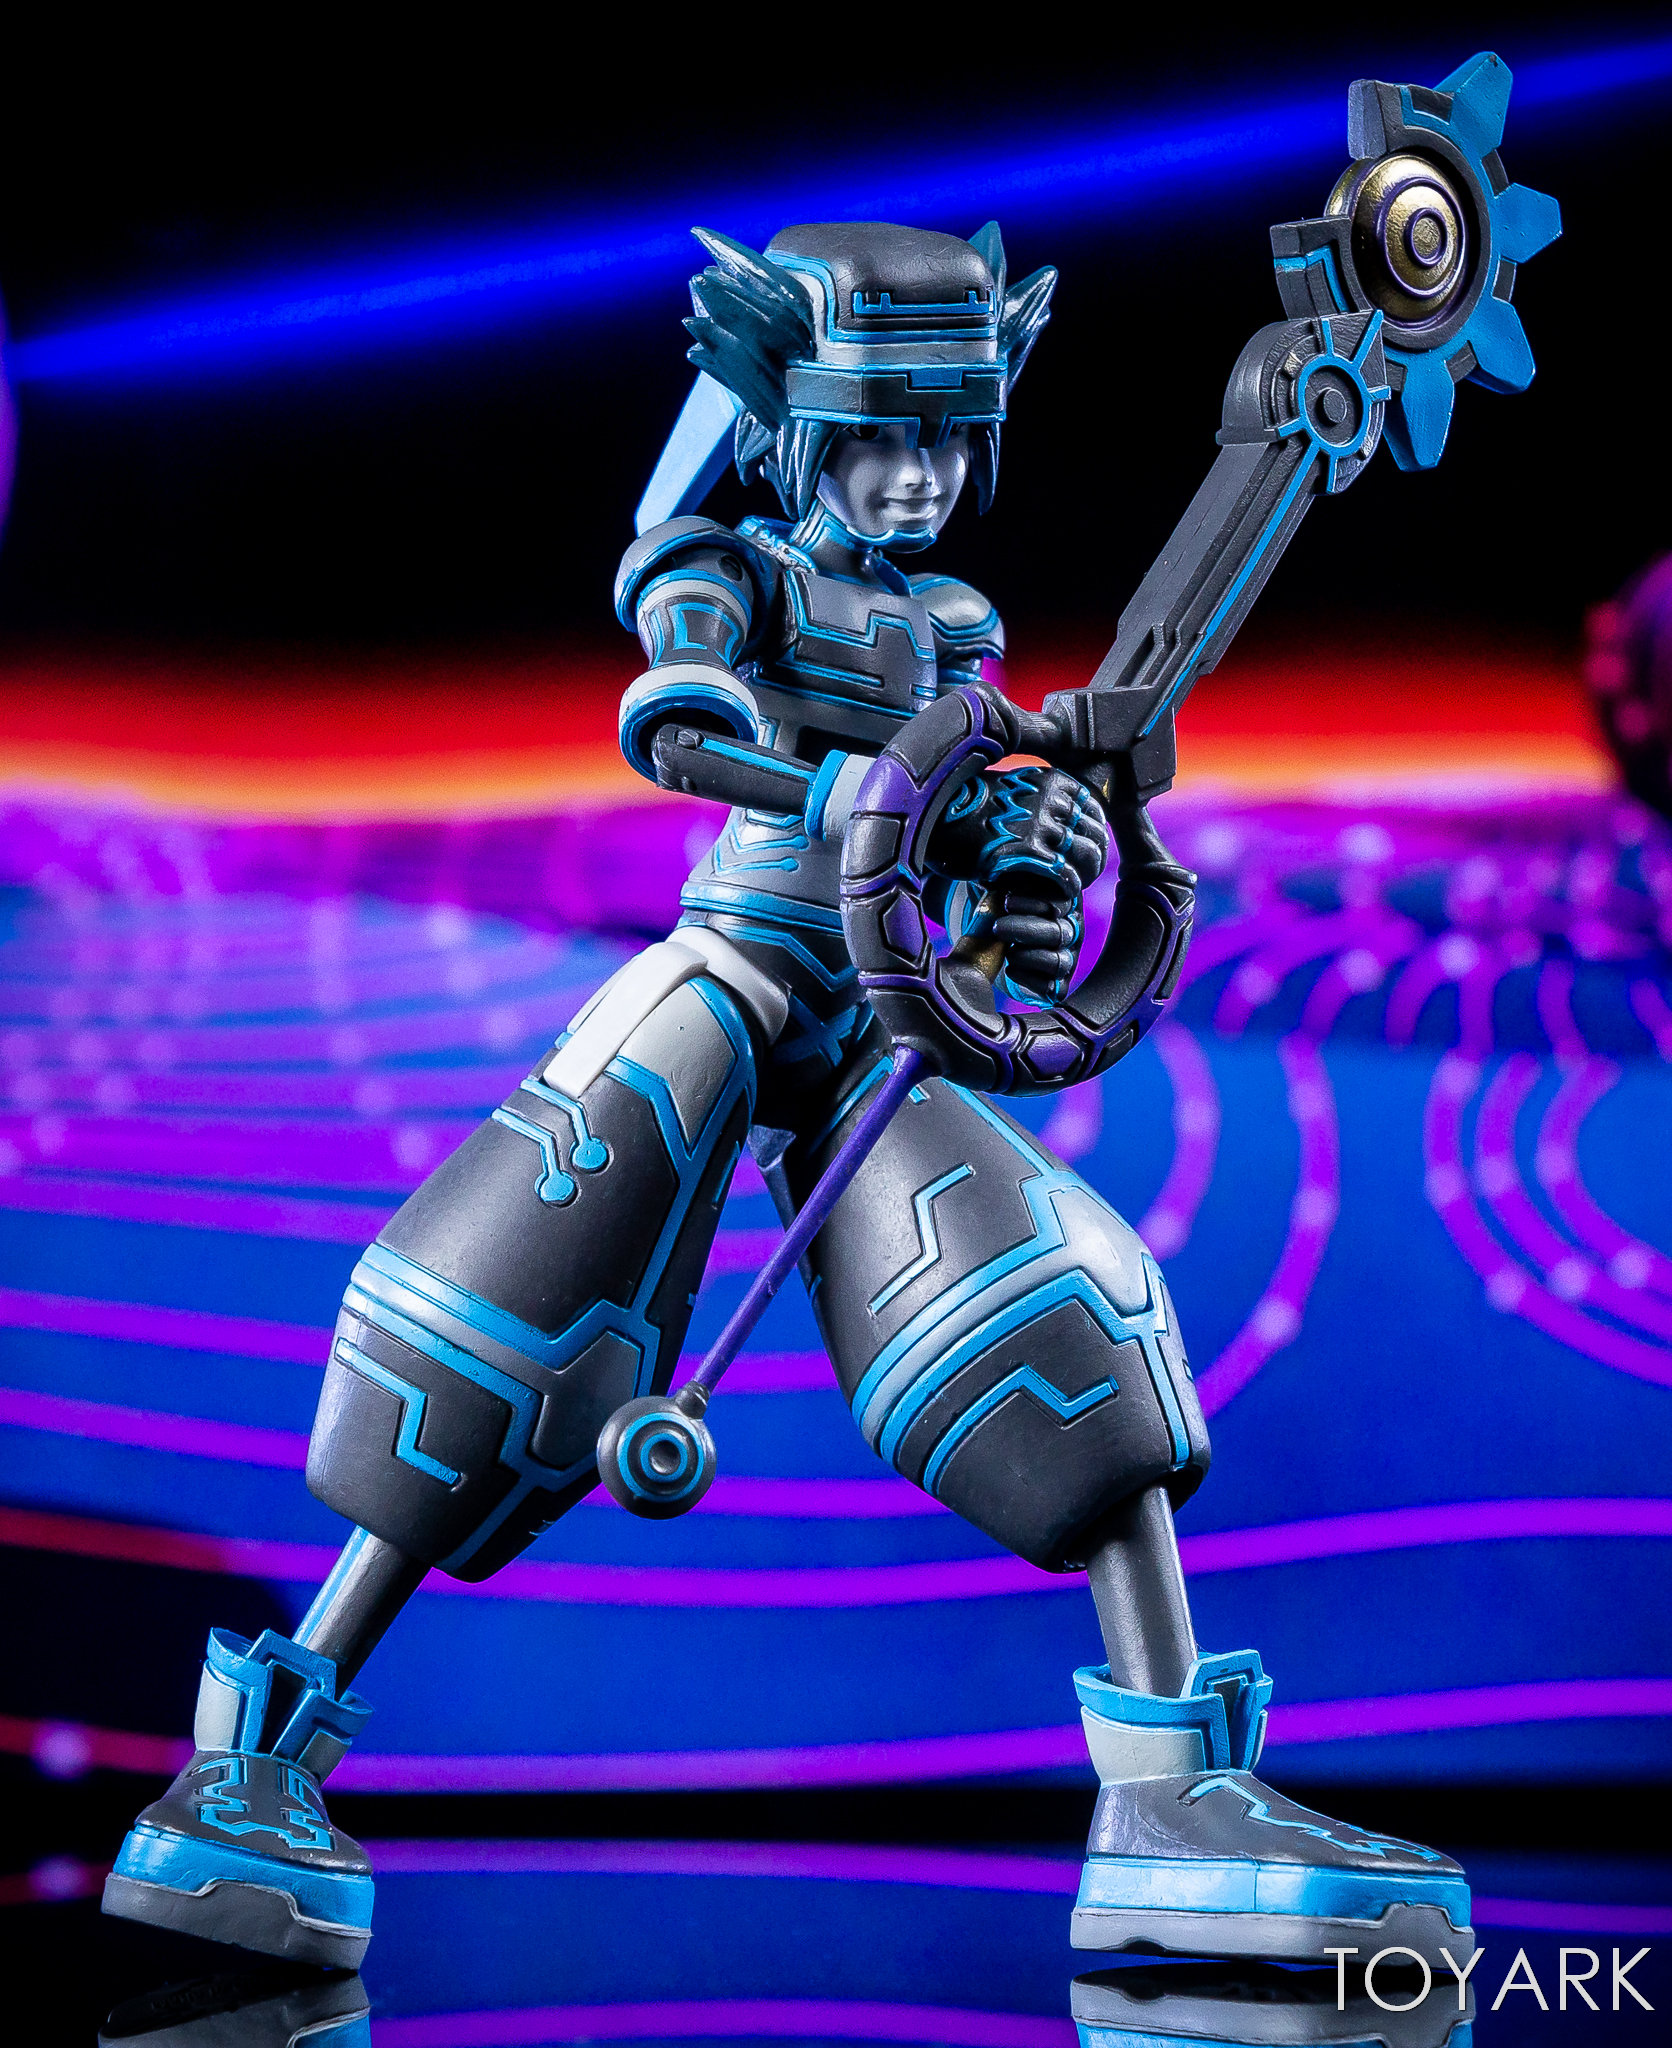 https://news.toyark.com/wp-content/uploads/sites/4/2019/02/DST-Kingdom-Hearts-Tron-028.jpg